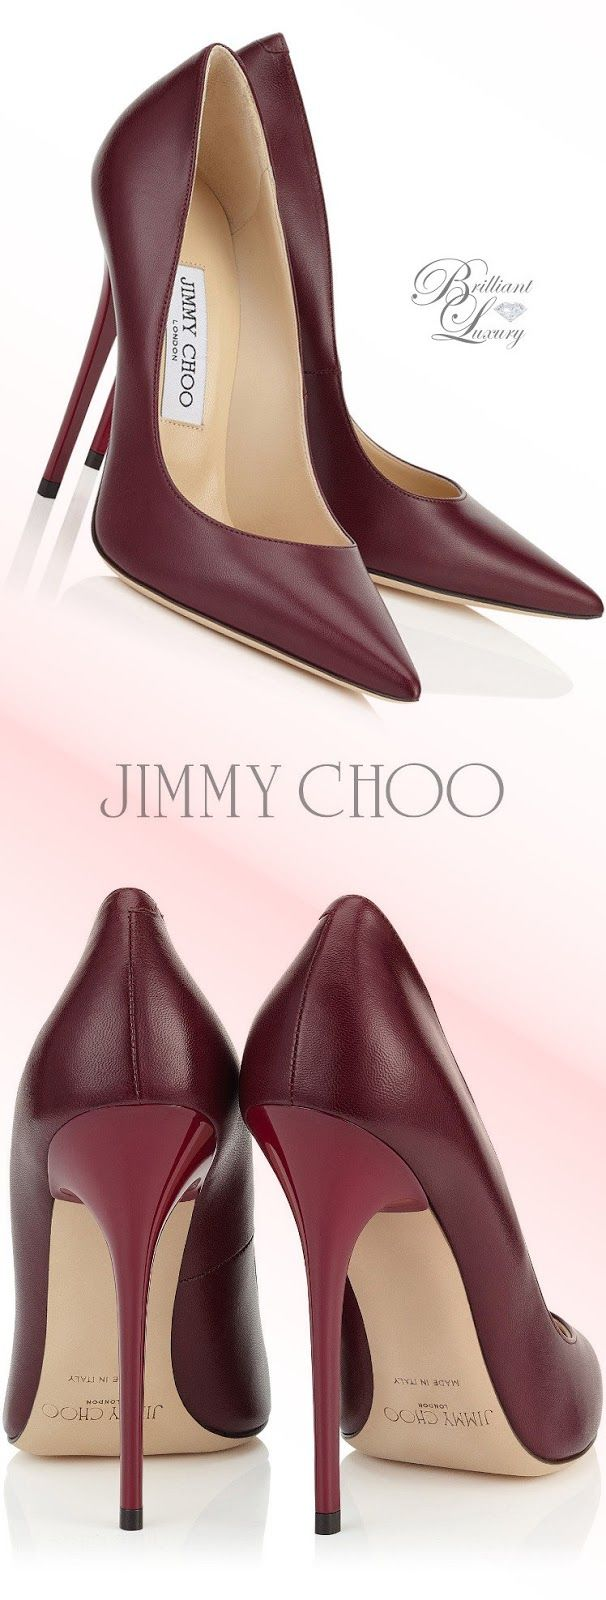 Jimmy Choo -blackberry stilettos                              …                                                                                                                                                                                 More